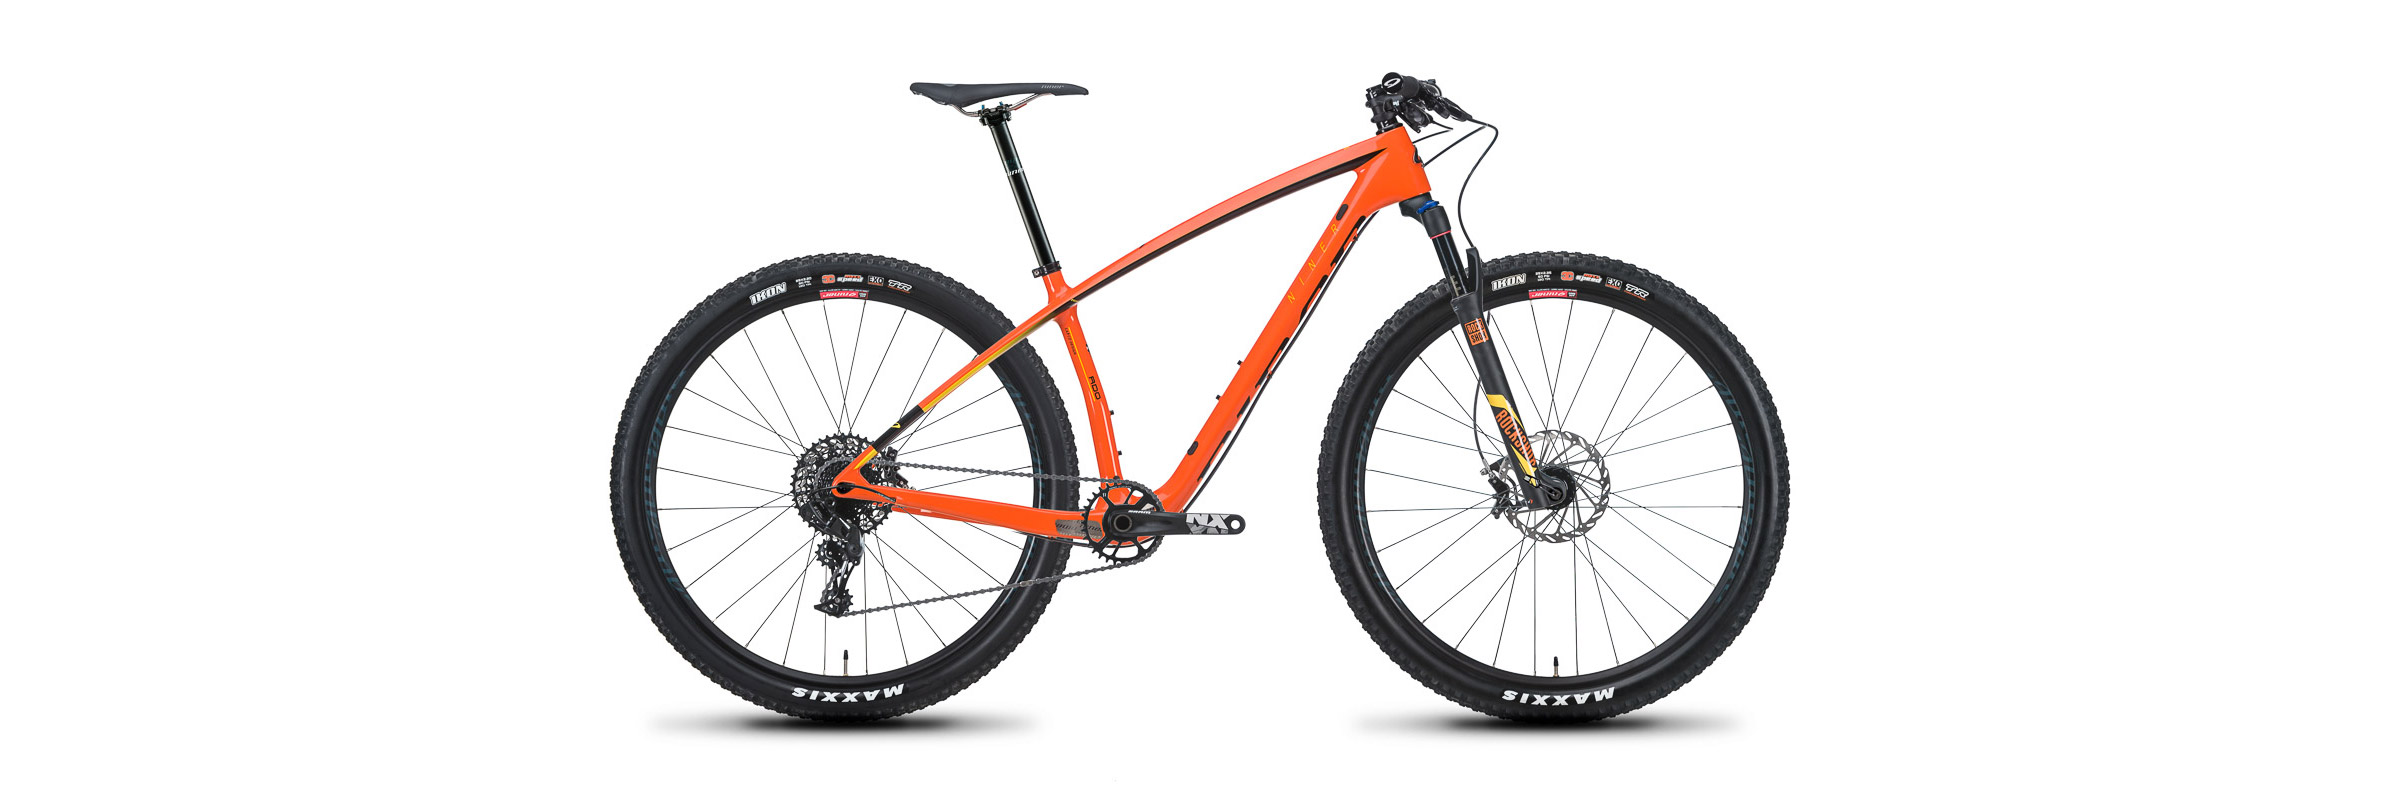 Niner Bikes Nz Air 9 Rdo 1 Star My18